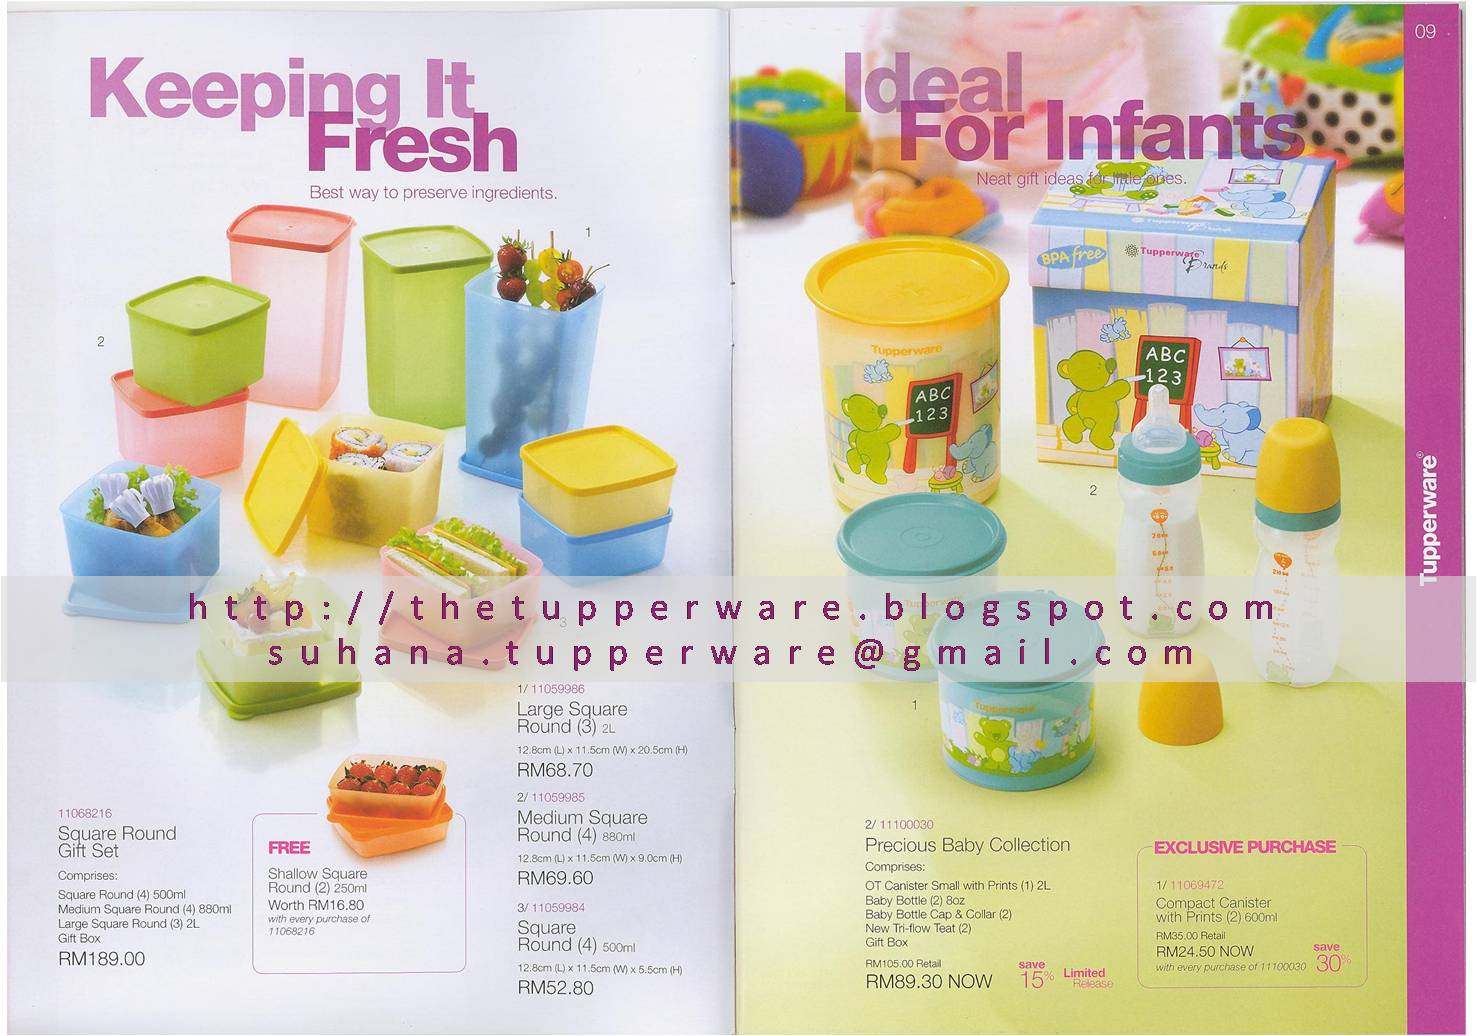 tupperware brands malaysia online catalogue collection business opportunity tupperware. Black Bedroom Furniture Sets. Home Design Ideas